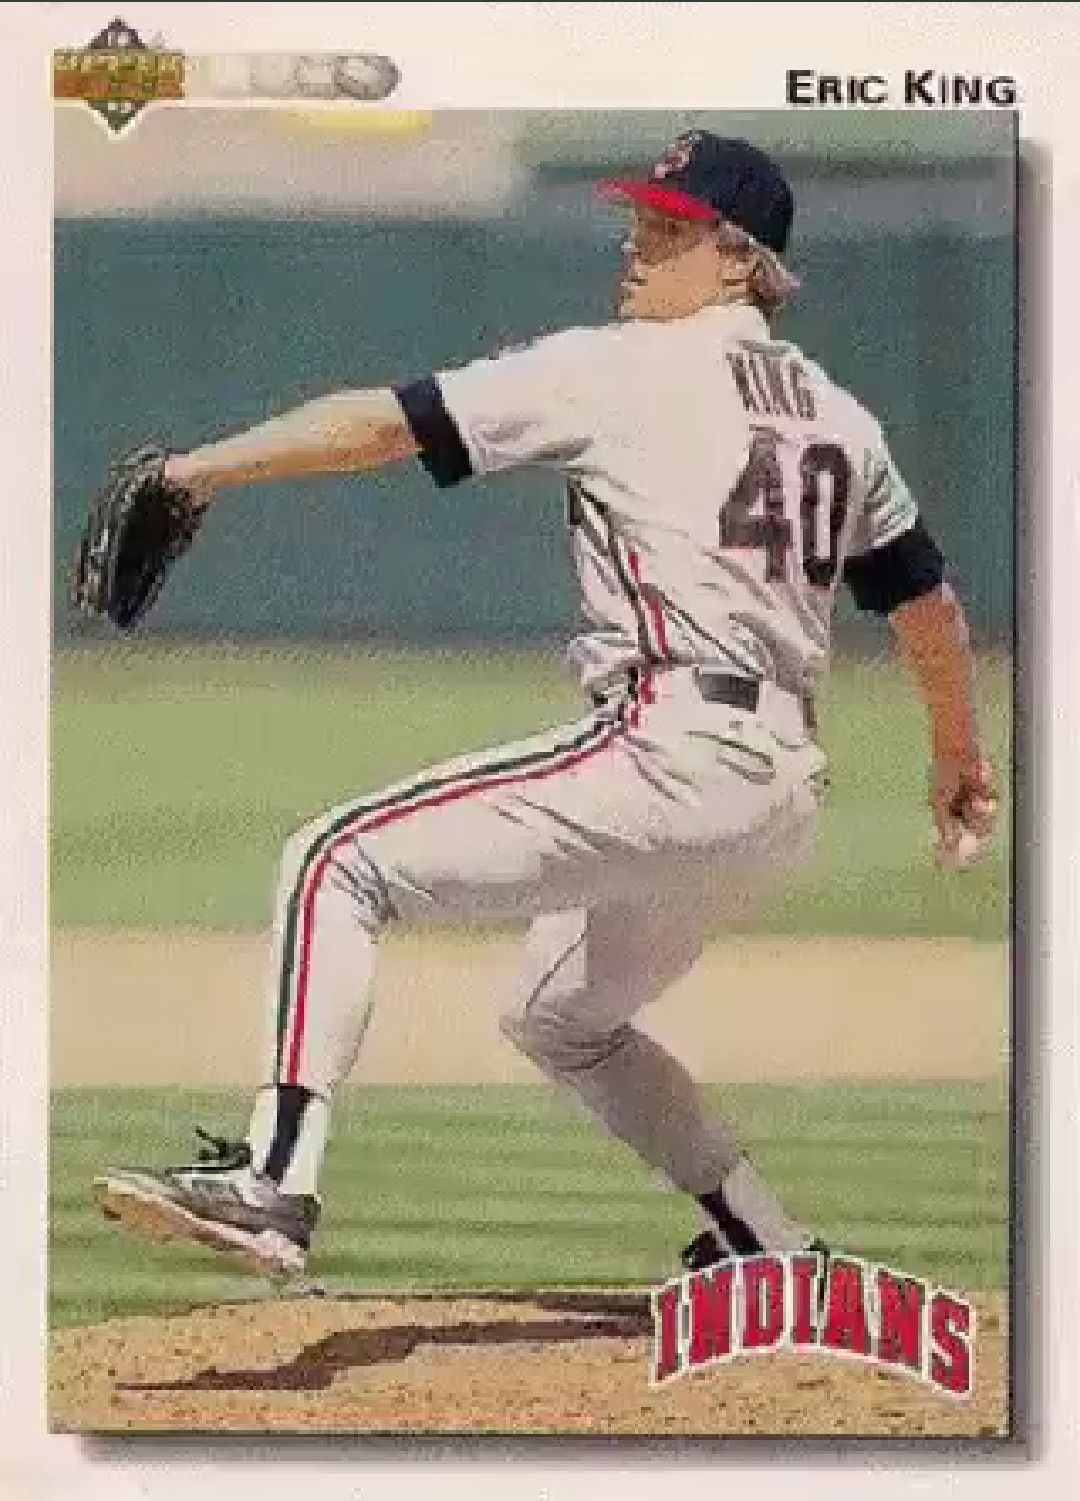 Pin by Durr Gruver on Upper Deck Baseball Cards in 2020